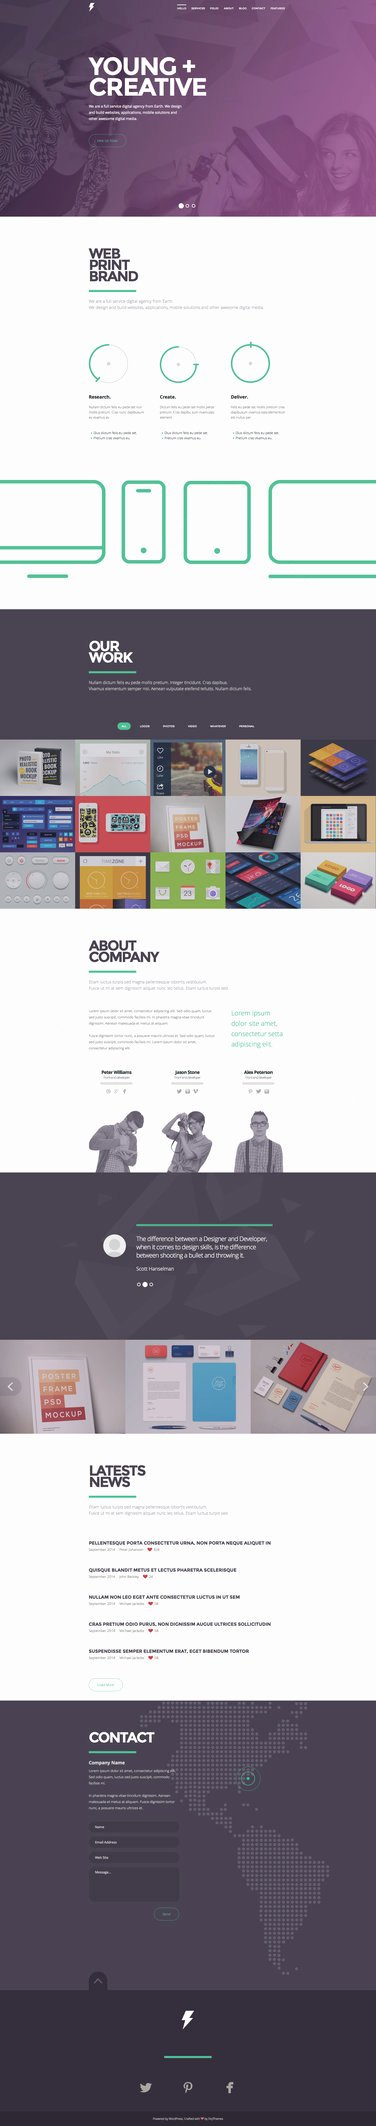 Sensa E Page Responsive Template by Darkstalkerr On